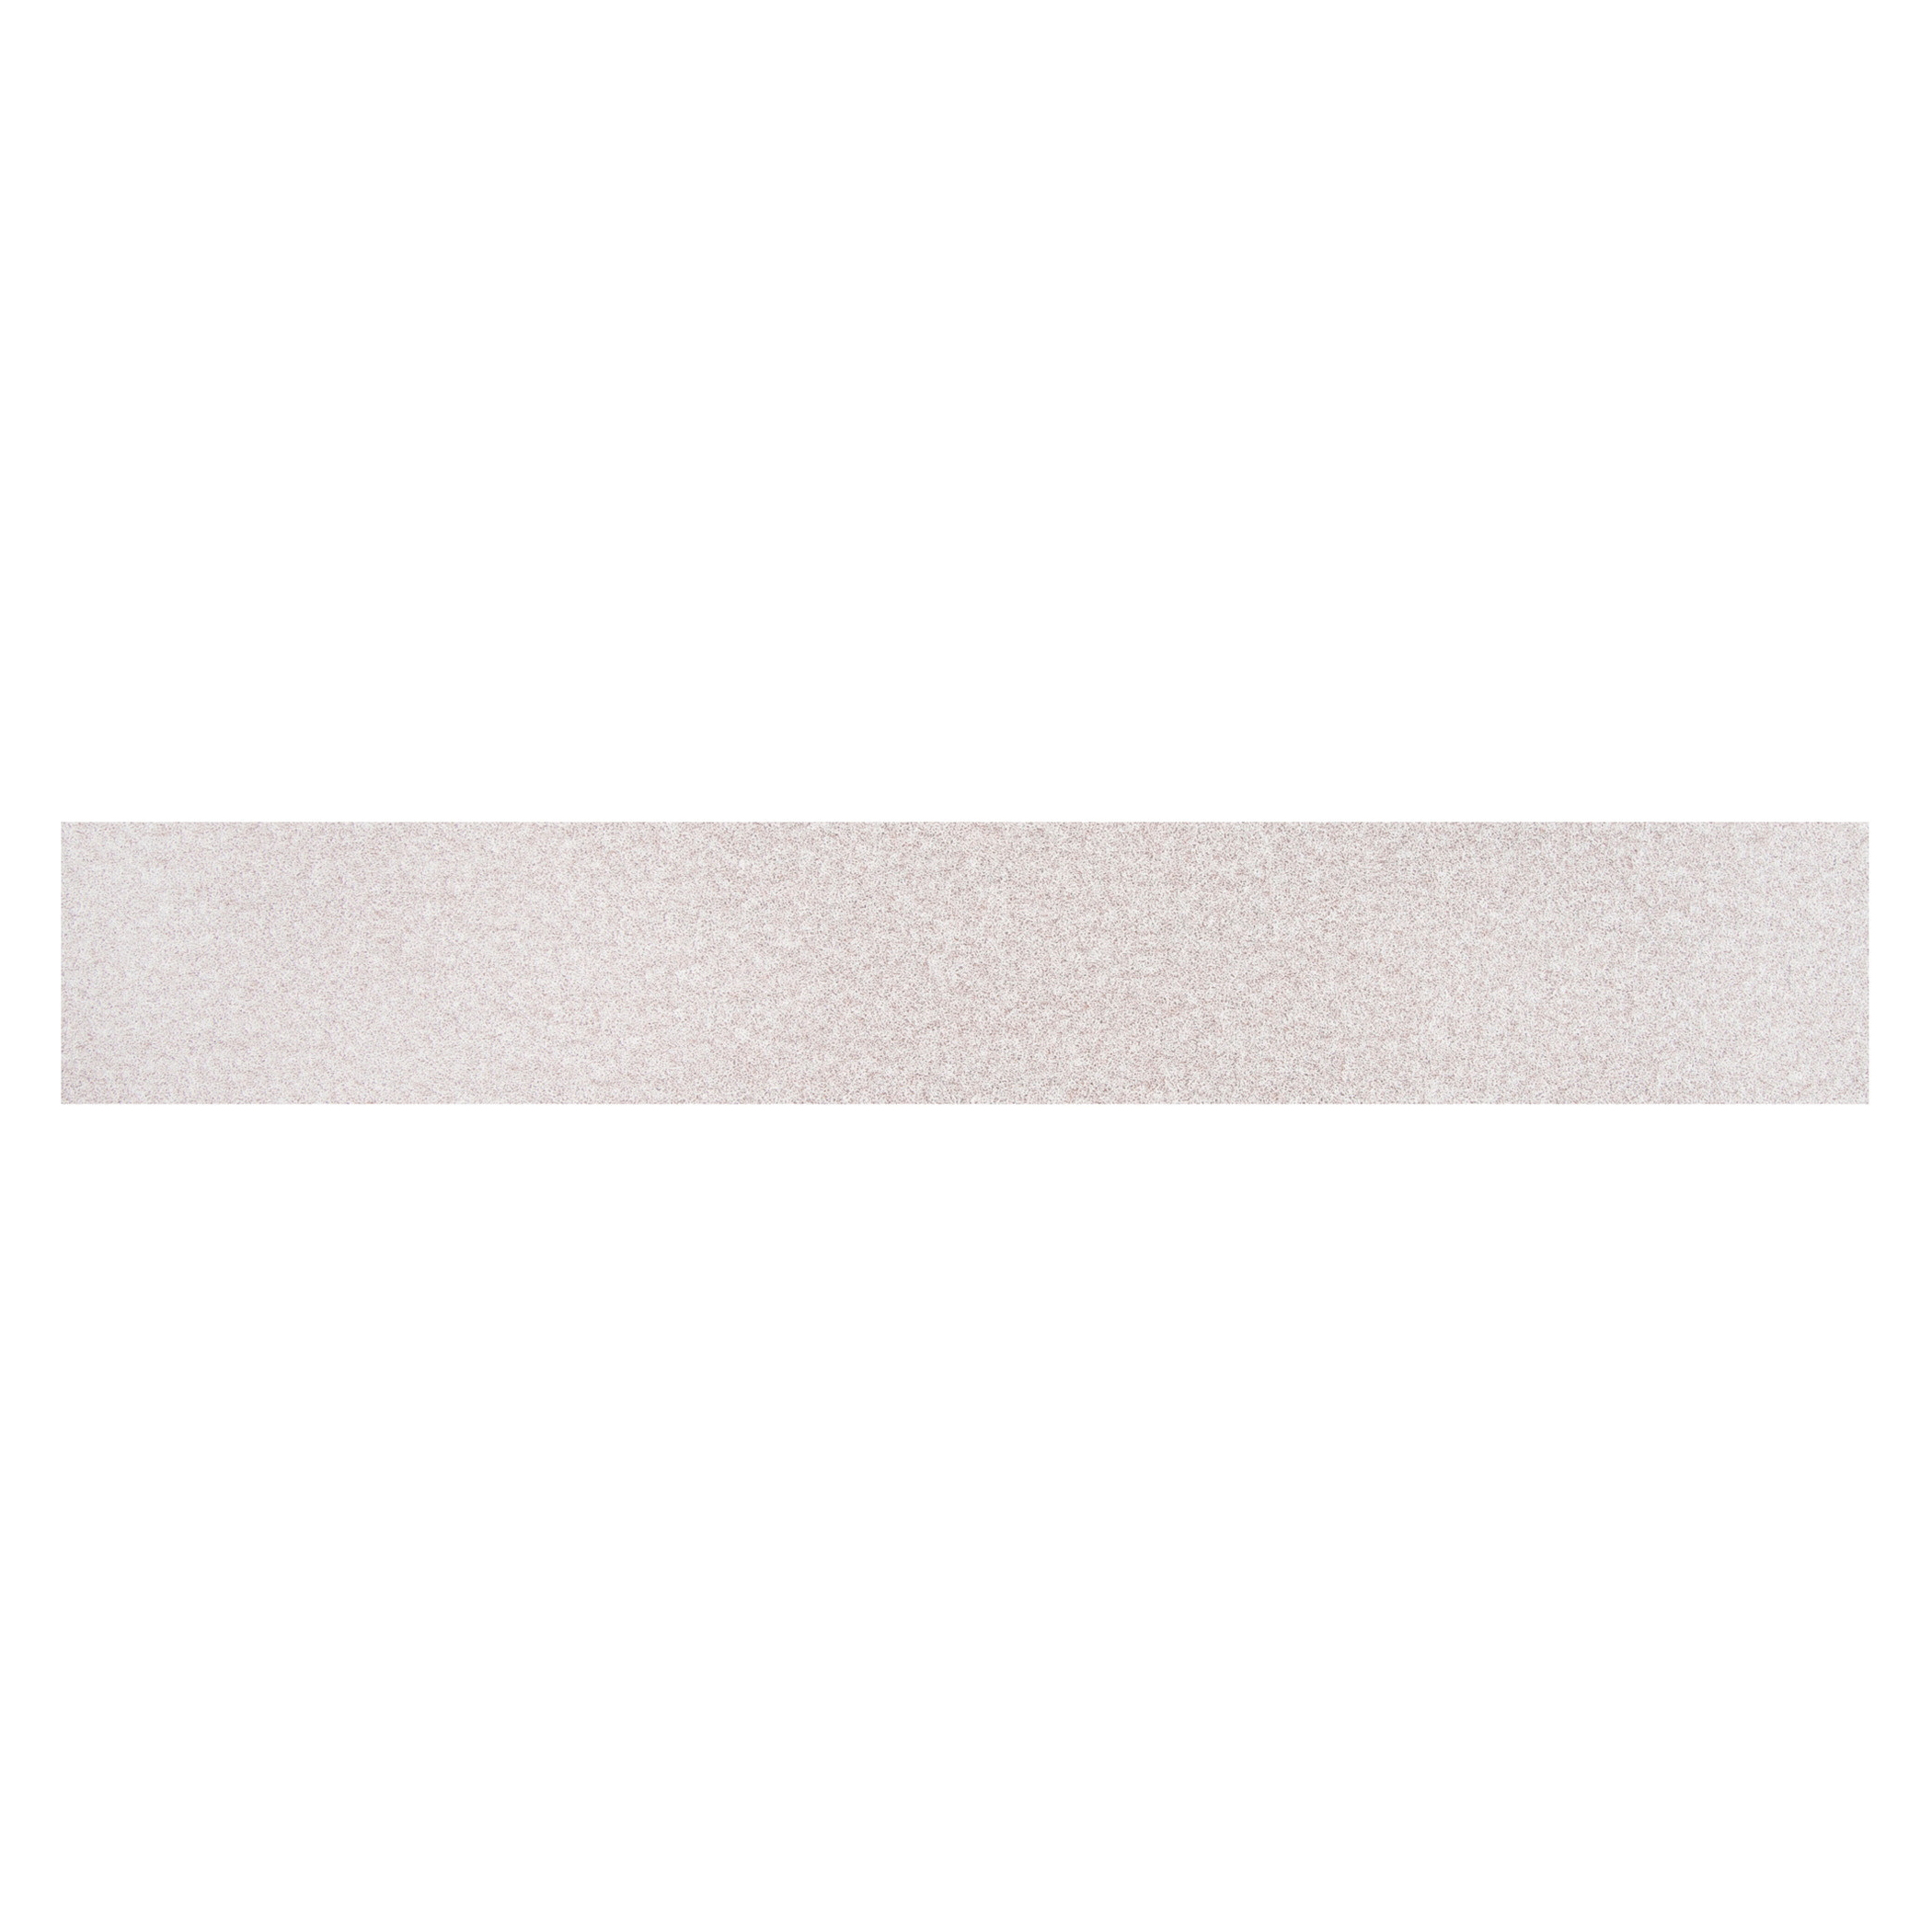 Norton® 66261131641 A275OP Hook and Loop Coated File Strip, 16-1/2 in L x 2-3/4 in W, P220 Grit, Very Fine Grade, Aluminum Oxide Abrasive, Anti-Loading Paper Backing